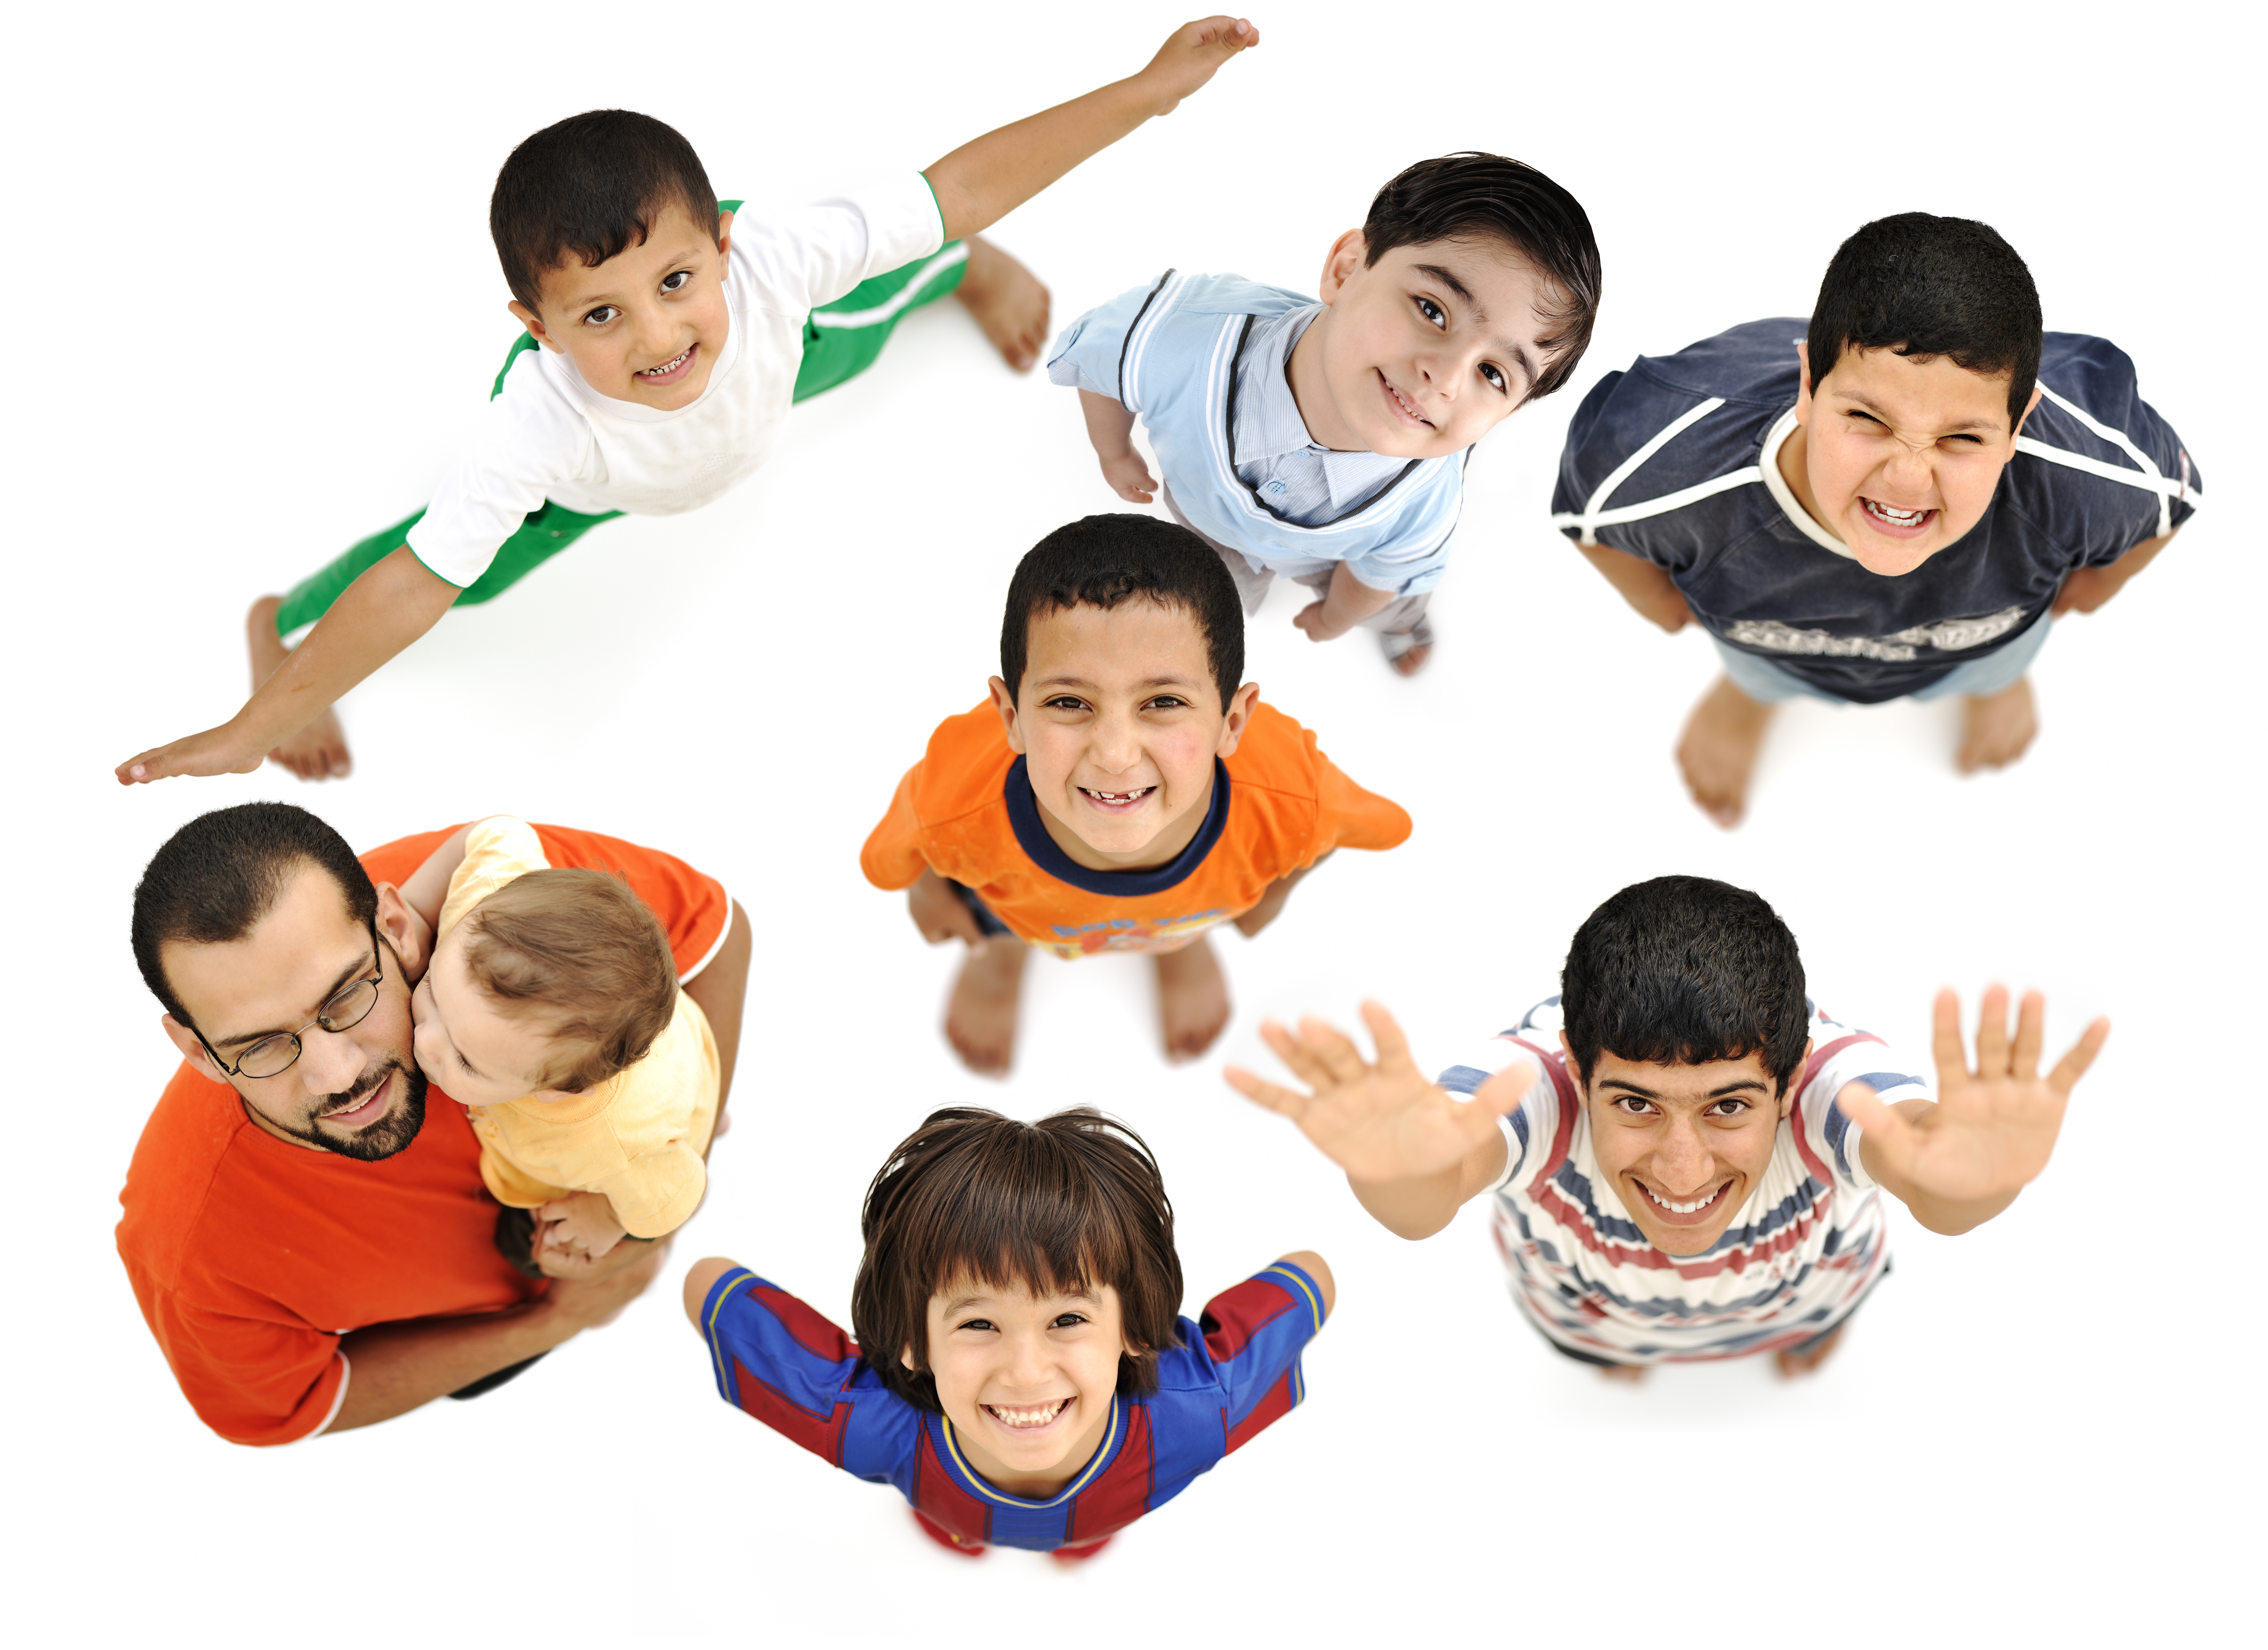 happy-children-positive-fresh-smiling-boys-from-above-different-angle-isolated-on-white-full-body-fa